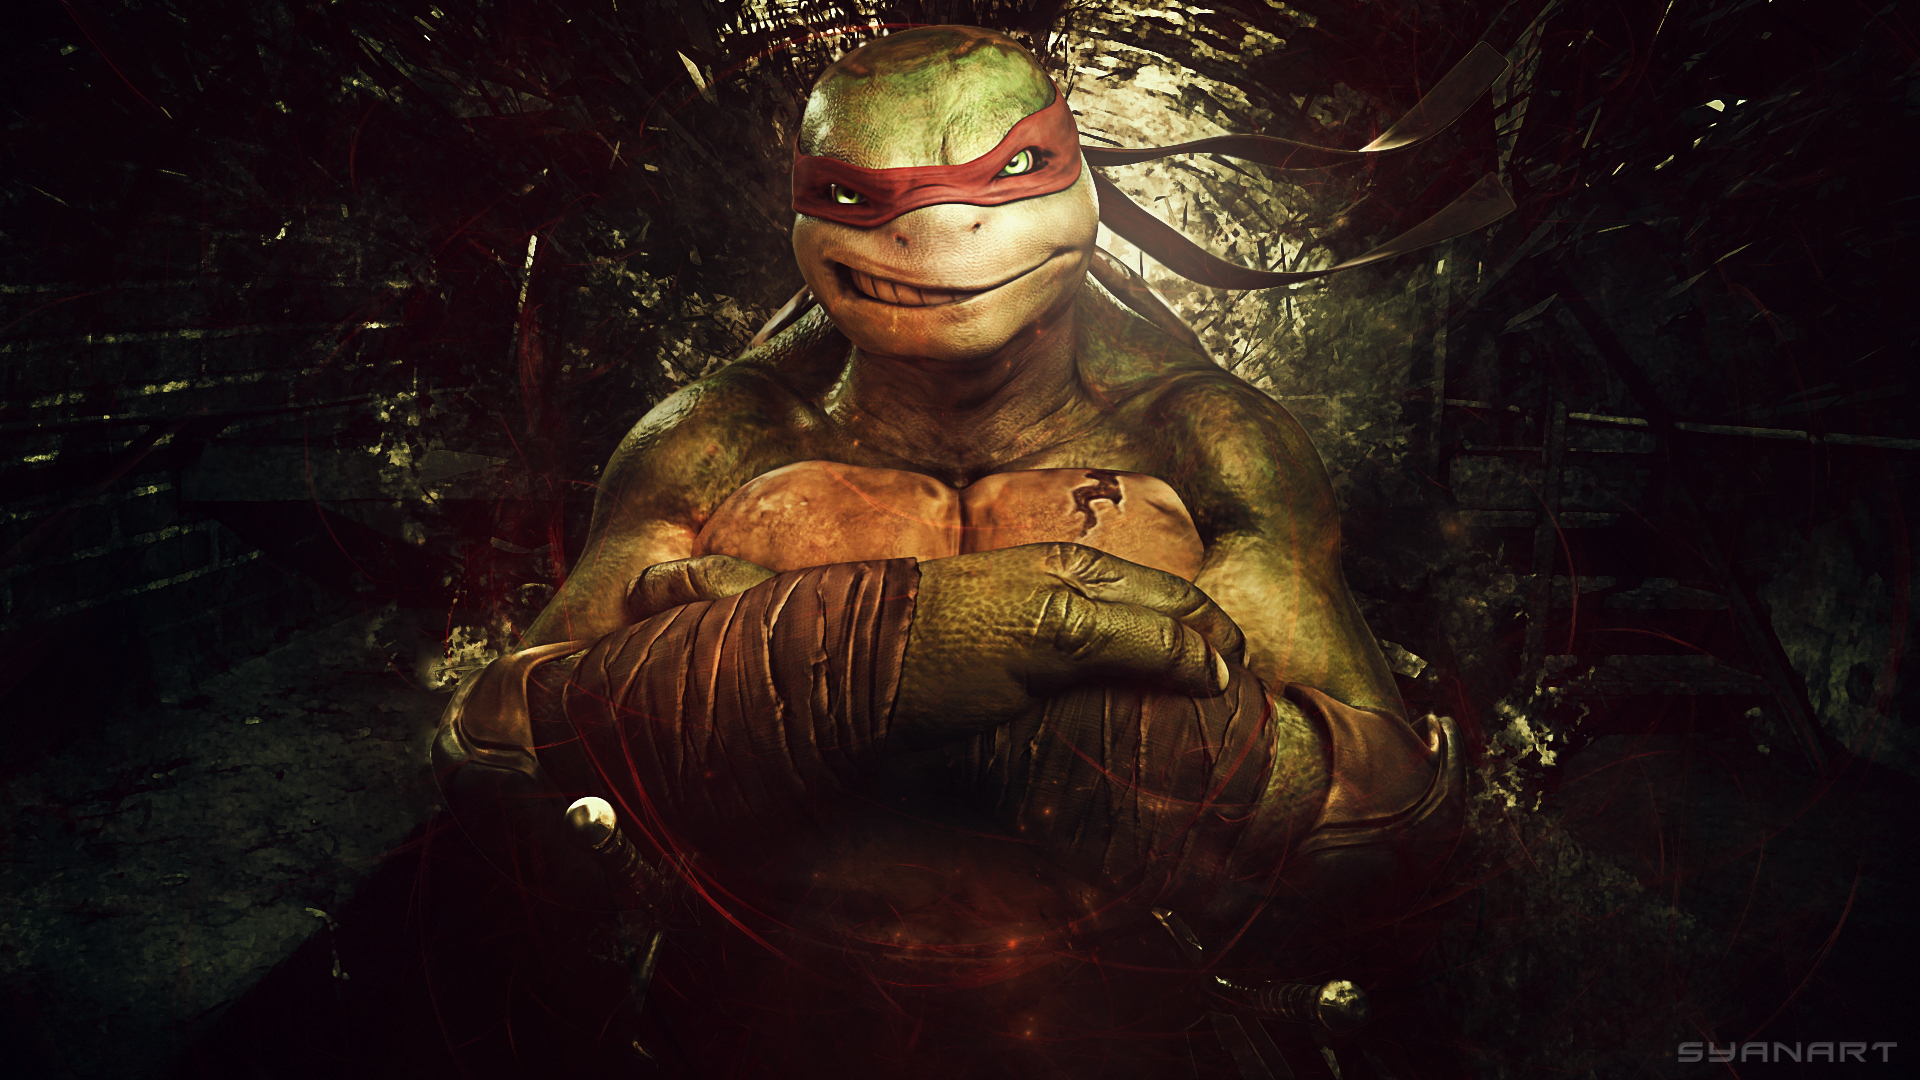 raphael-ninja-turtles-art.jpg